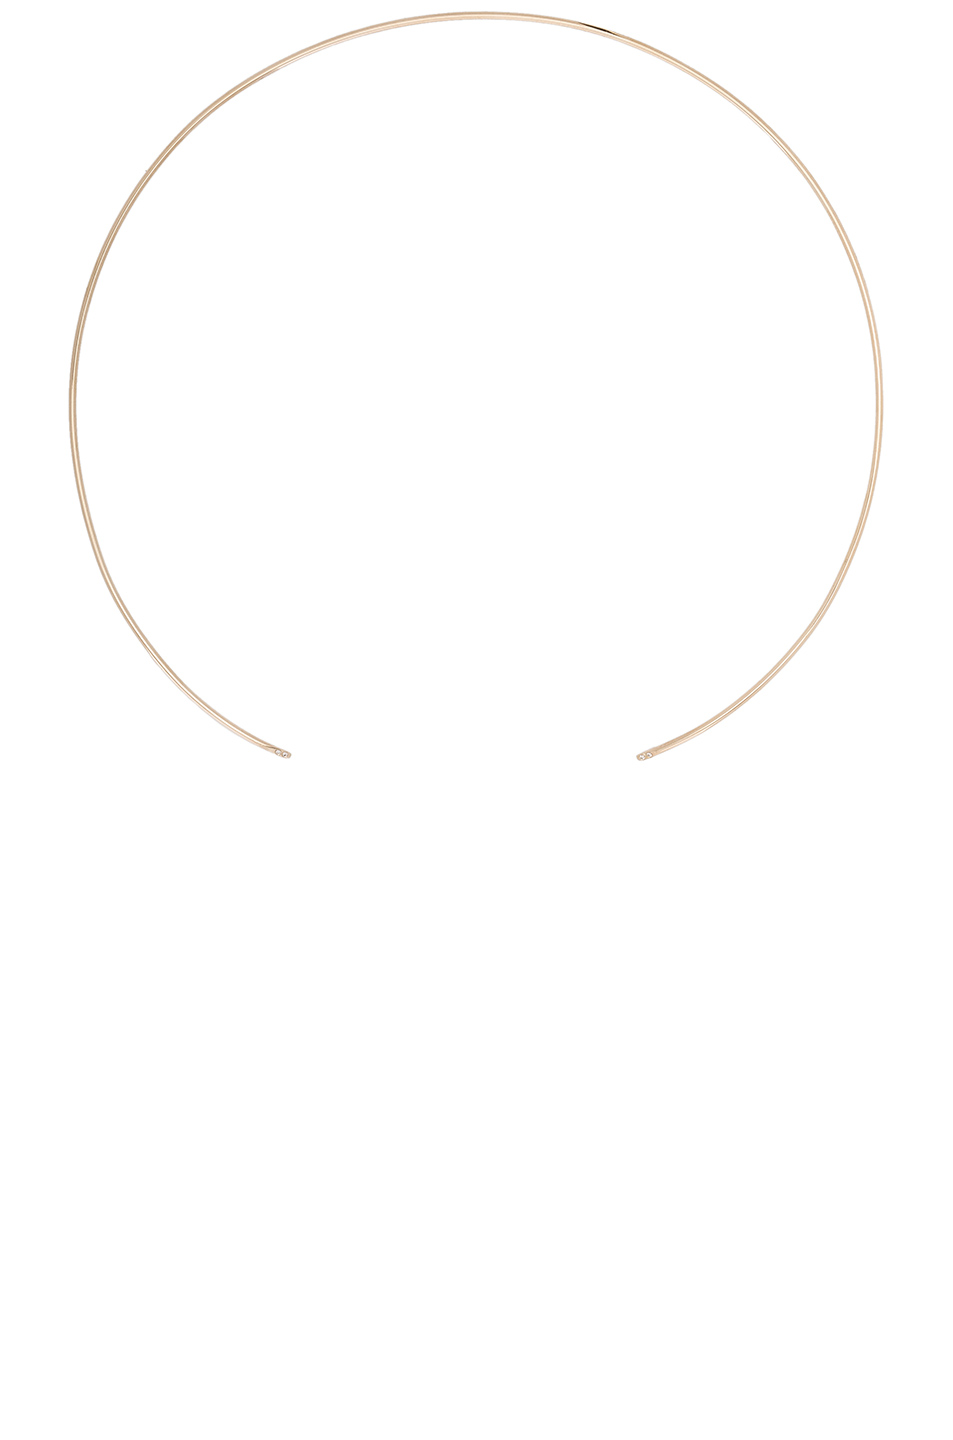 ERTH 14K Gold Thin Choker in Metallics